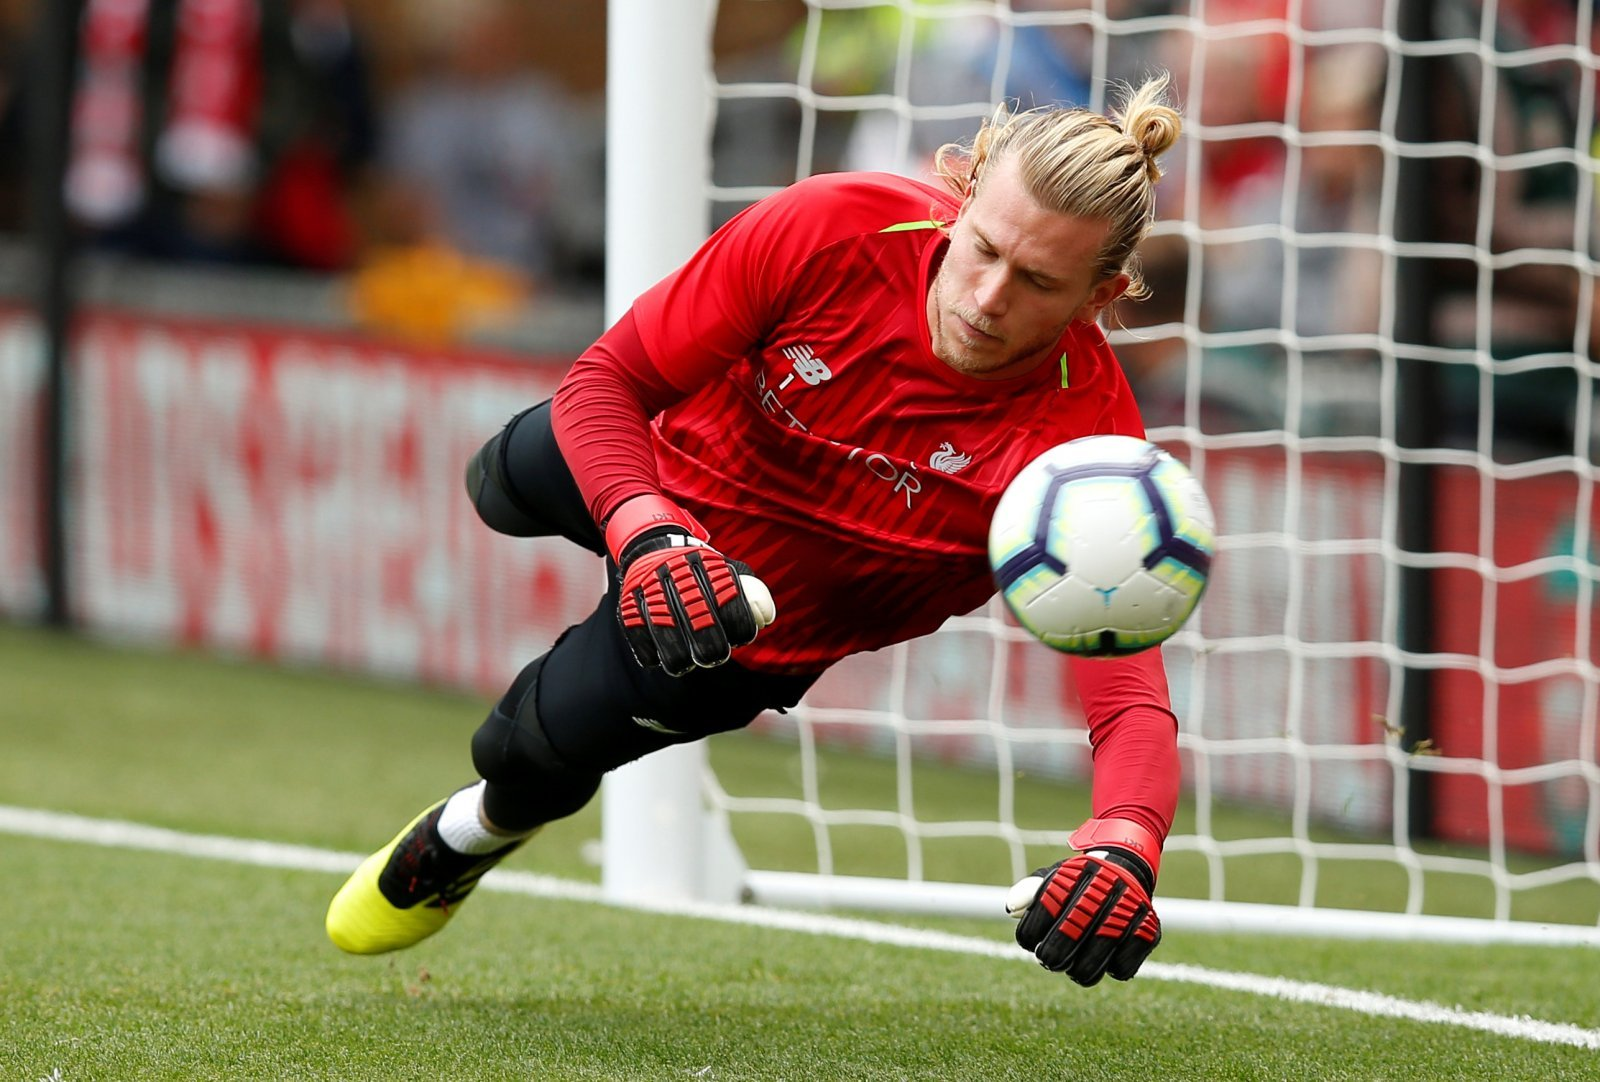 Liverpool's Loris Karius should seek to reignite his career by moving to Celtic this month